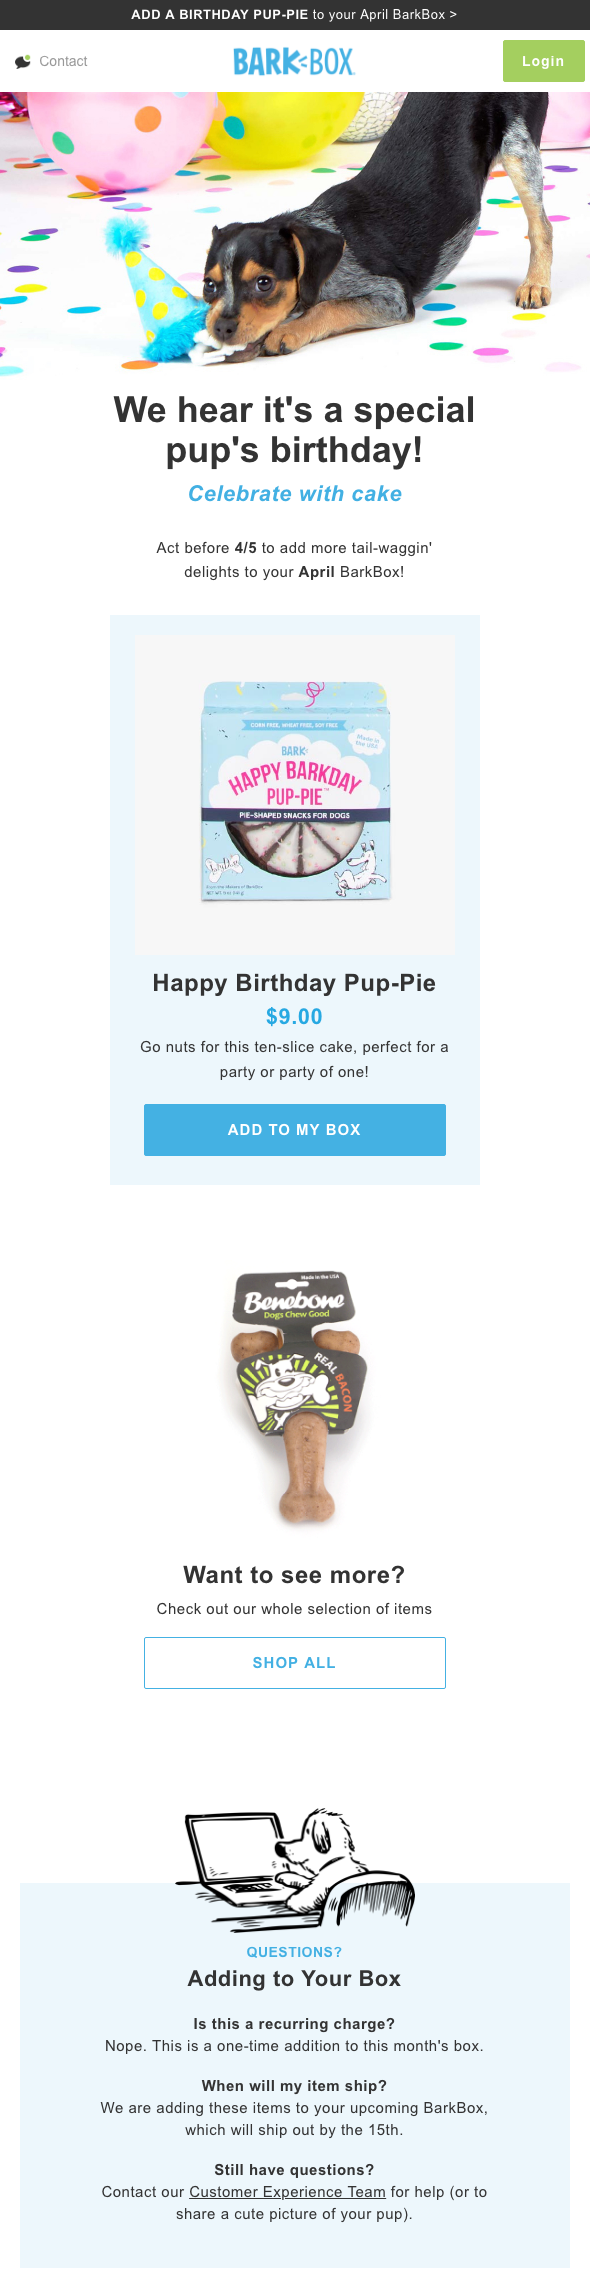 barkbox-birthday-barkbox